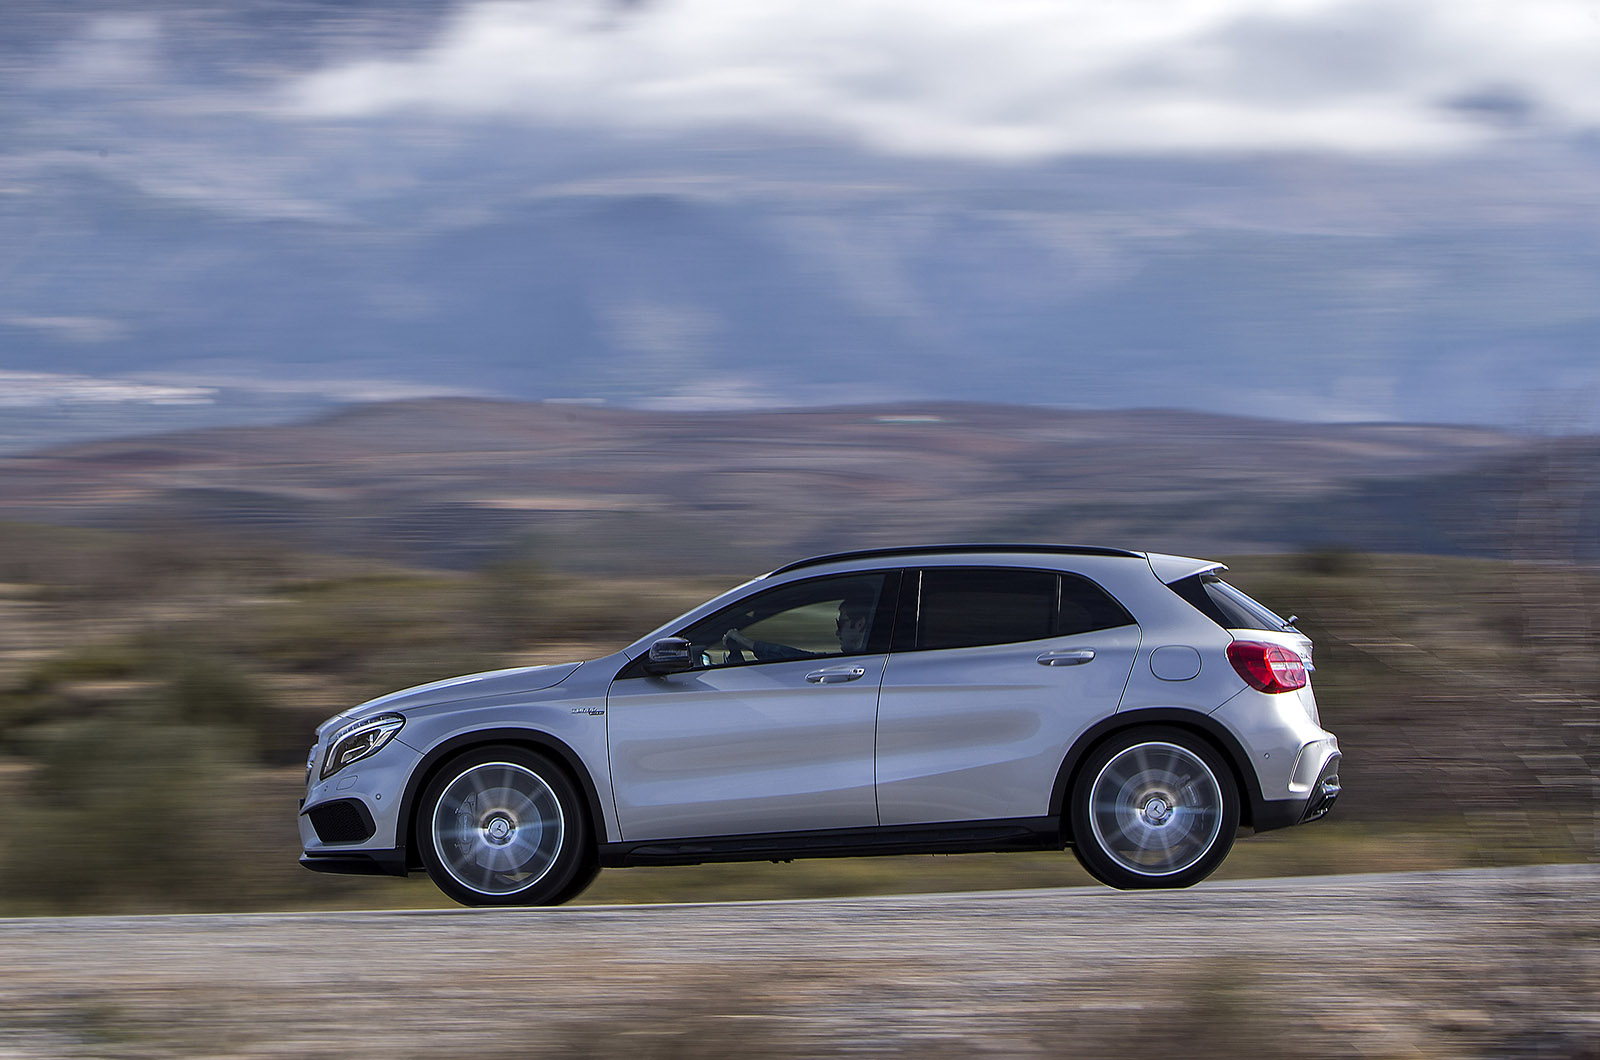 The GLA45 AMG rides well, smoothing out all but the worst bumps in the ...